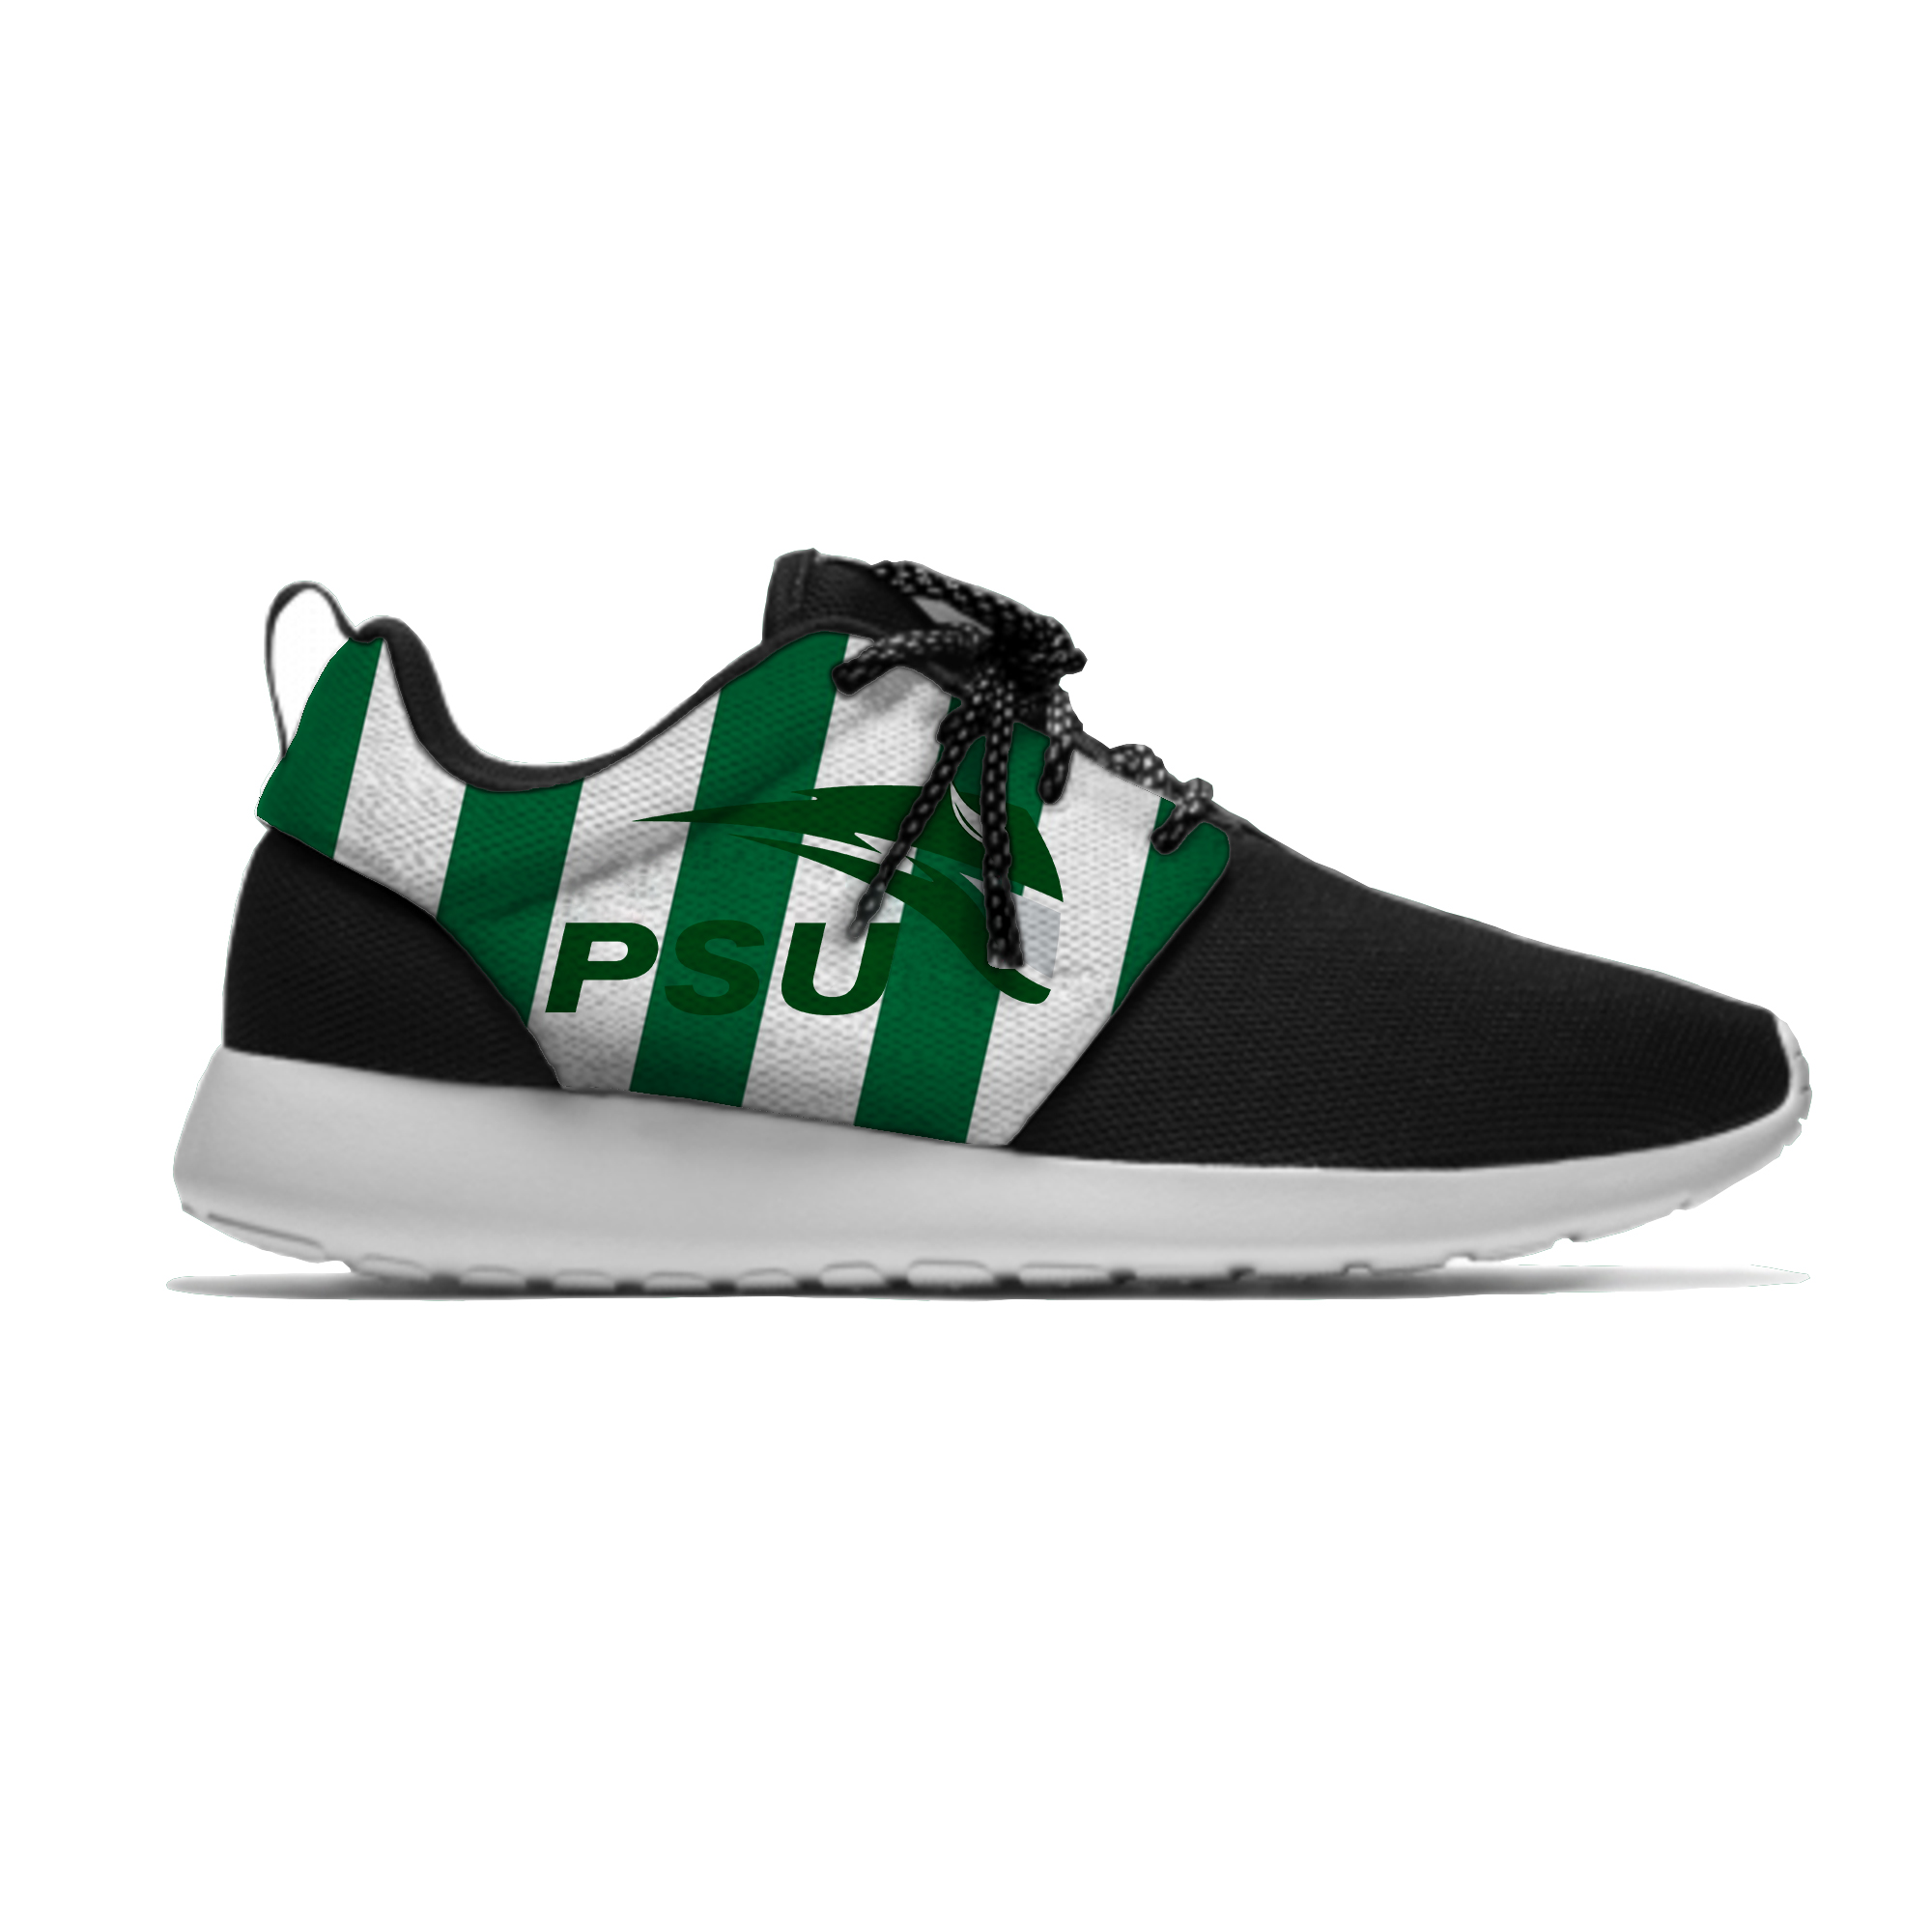 Men's/Women's Breathable Running Portland State Shoes University Sport Meshy Shoes Casual Lightweight Sneakers(China)